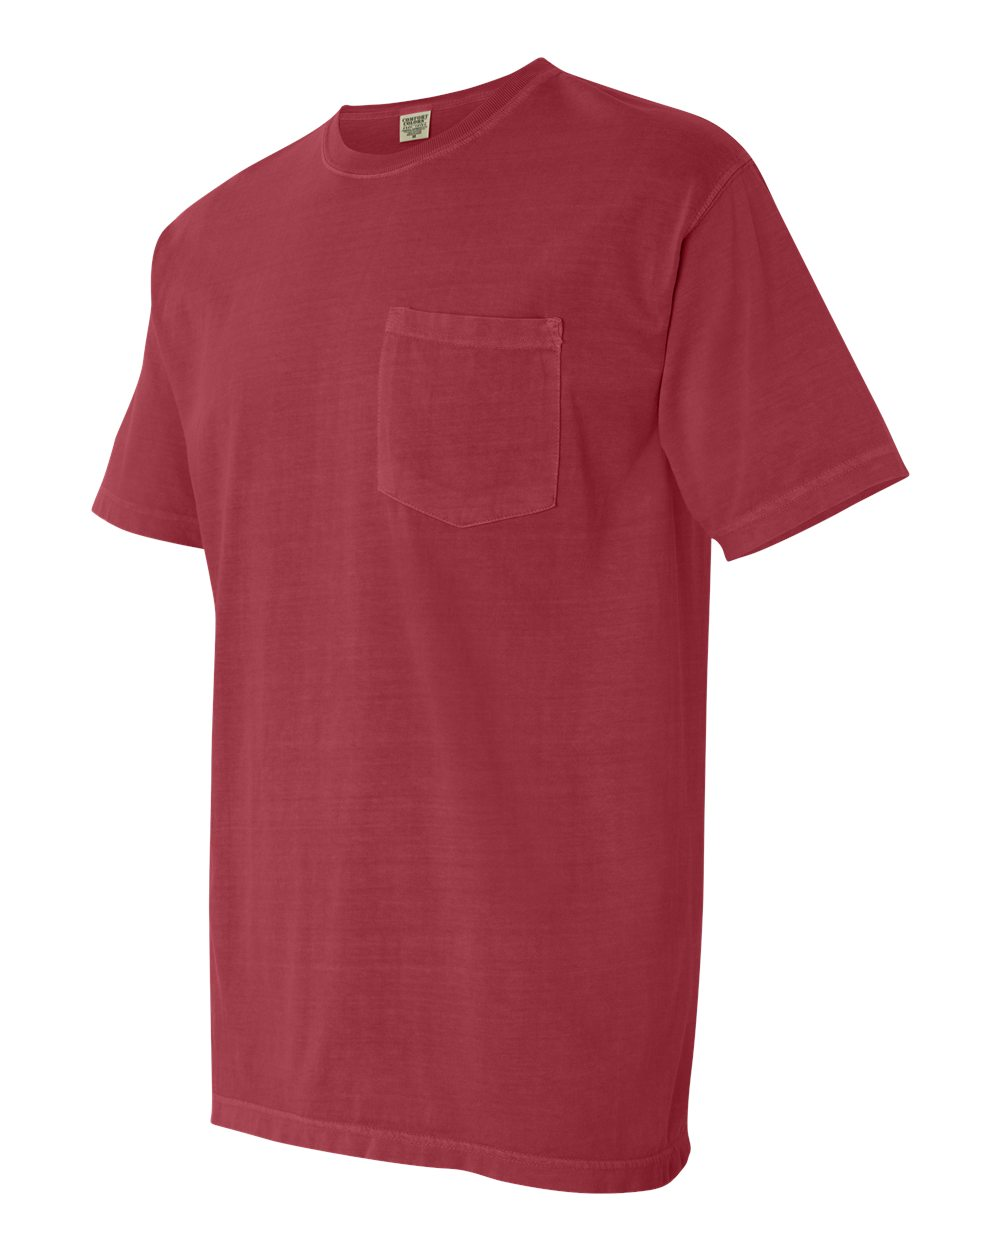 Comfort-Colors-Men-039-s-6-1-oz-Garment-Dyed-Pocket-T-Shirt-6030CC-S-3XL thumbnail 33